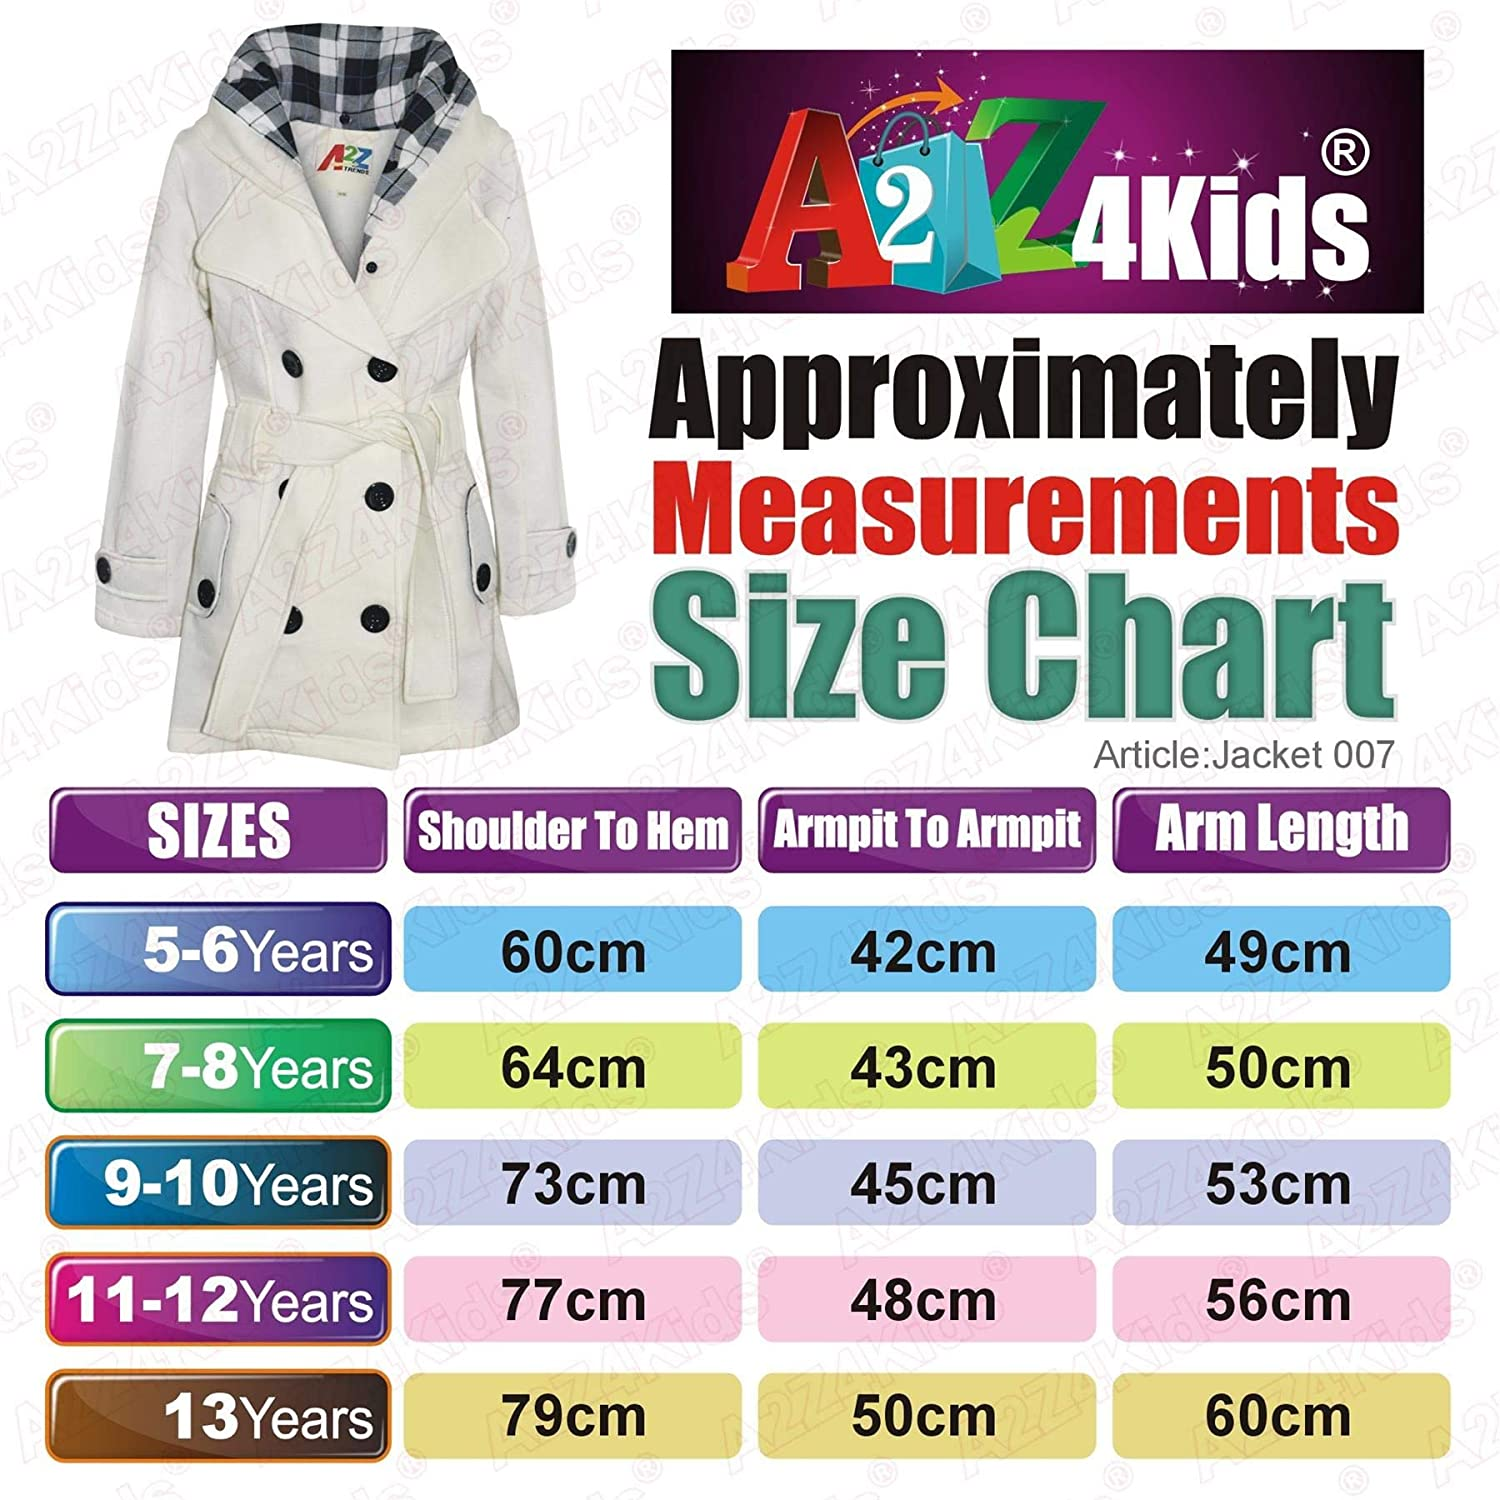 A2Z 4 Kids/® Kids Girls Parka Jacket Hooded Trench Coat Fashion Wool Blends Warm Padded Cream Jacket Oversized Lapels Belted Cuffs Long Overcoat New Age 5 6 7 8 9 10 11 12 13 Years